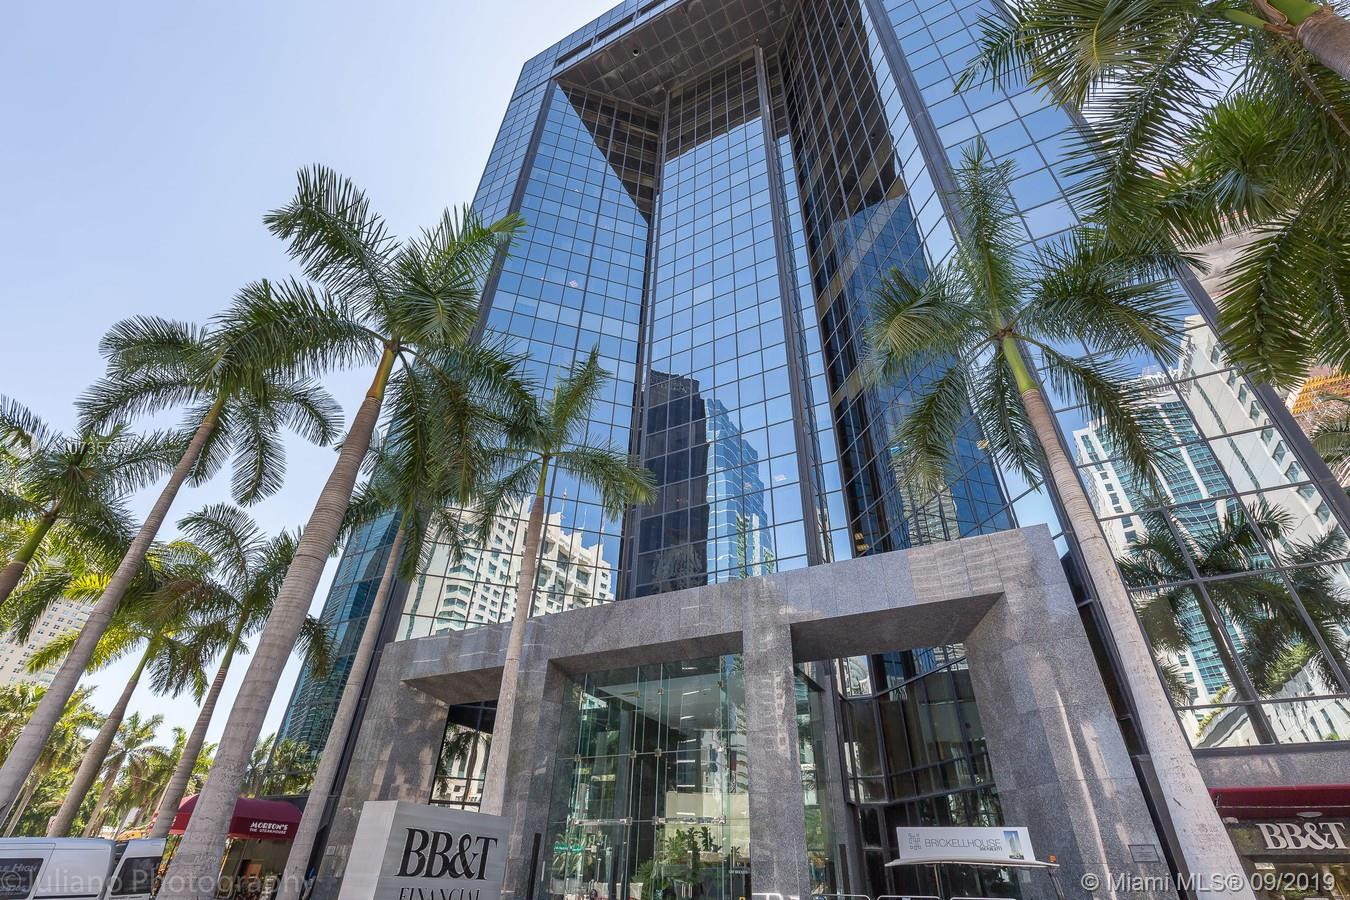 """""""GREAT OPORTUNITY"""" OWNED THIS LUXURY OFFICE ON THE HEARD OF BRICKELL 1683 SF OF REALLY NICE PROFESSIONAL LOOKING PLACE ON THIS MODERN BUILDING IN ONE OF THE MOST DESIRED AREAS ON BRICKELL TENANT OCCUPIED PLEASE CALL LISTING AGENTPARKING IS NOT INCLUDED ON THE SALE"""